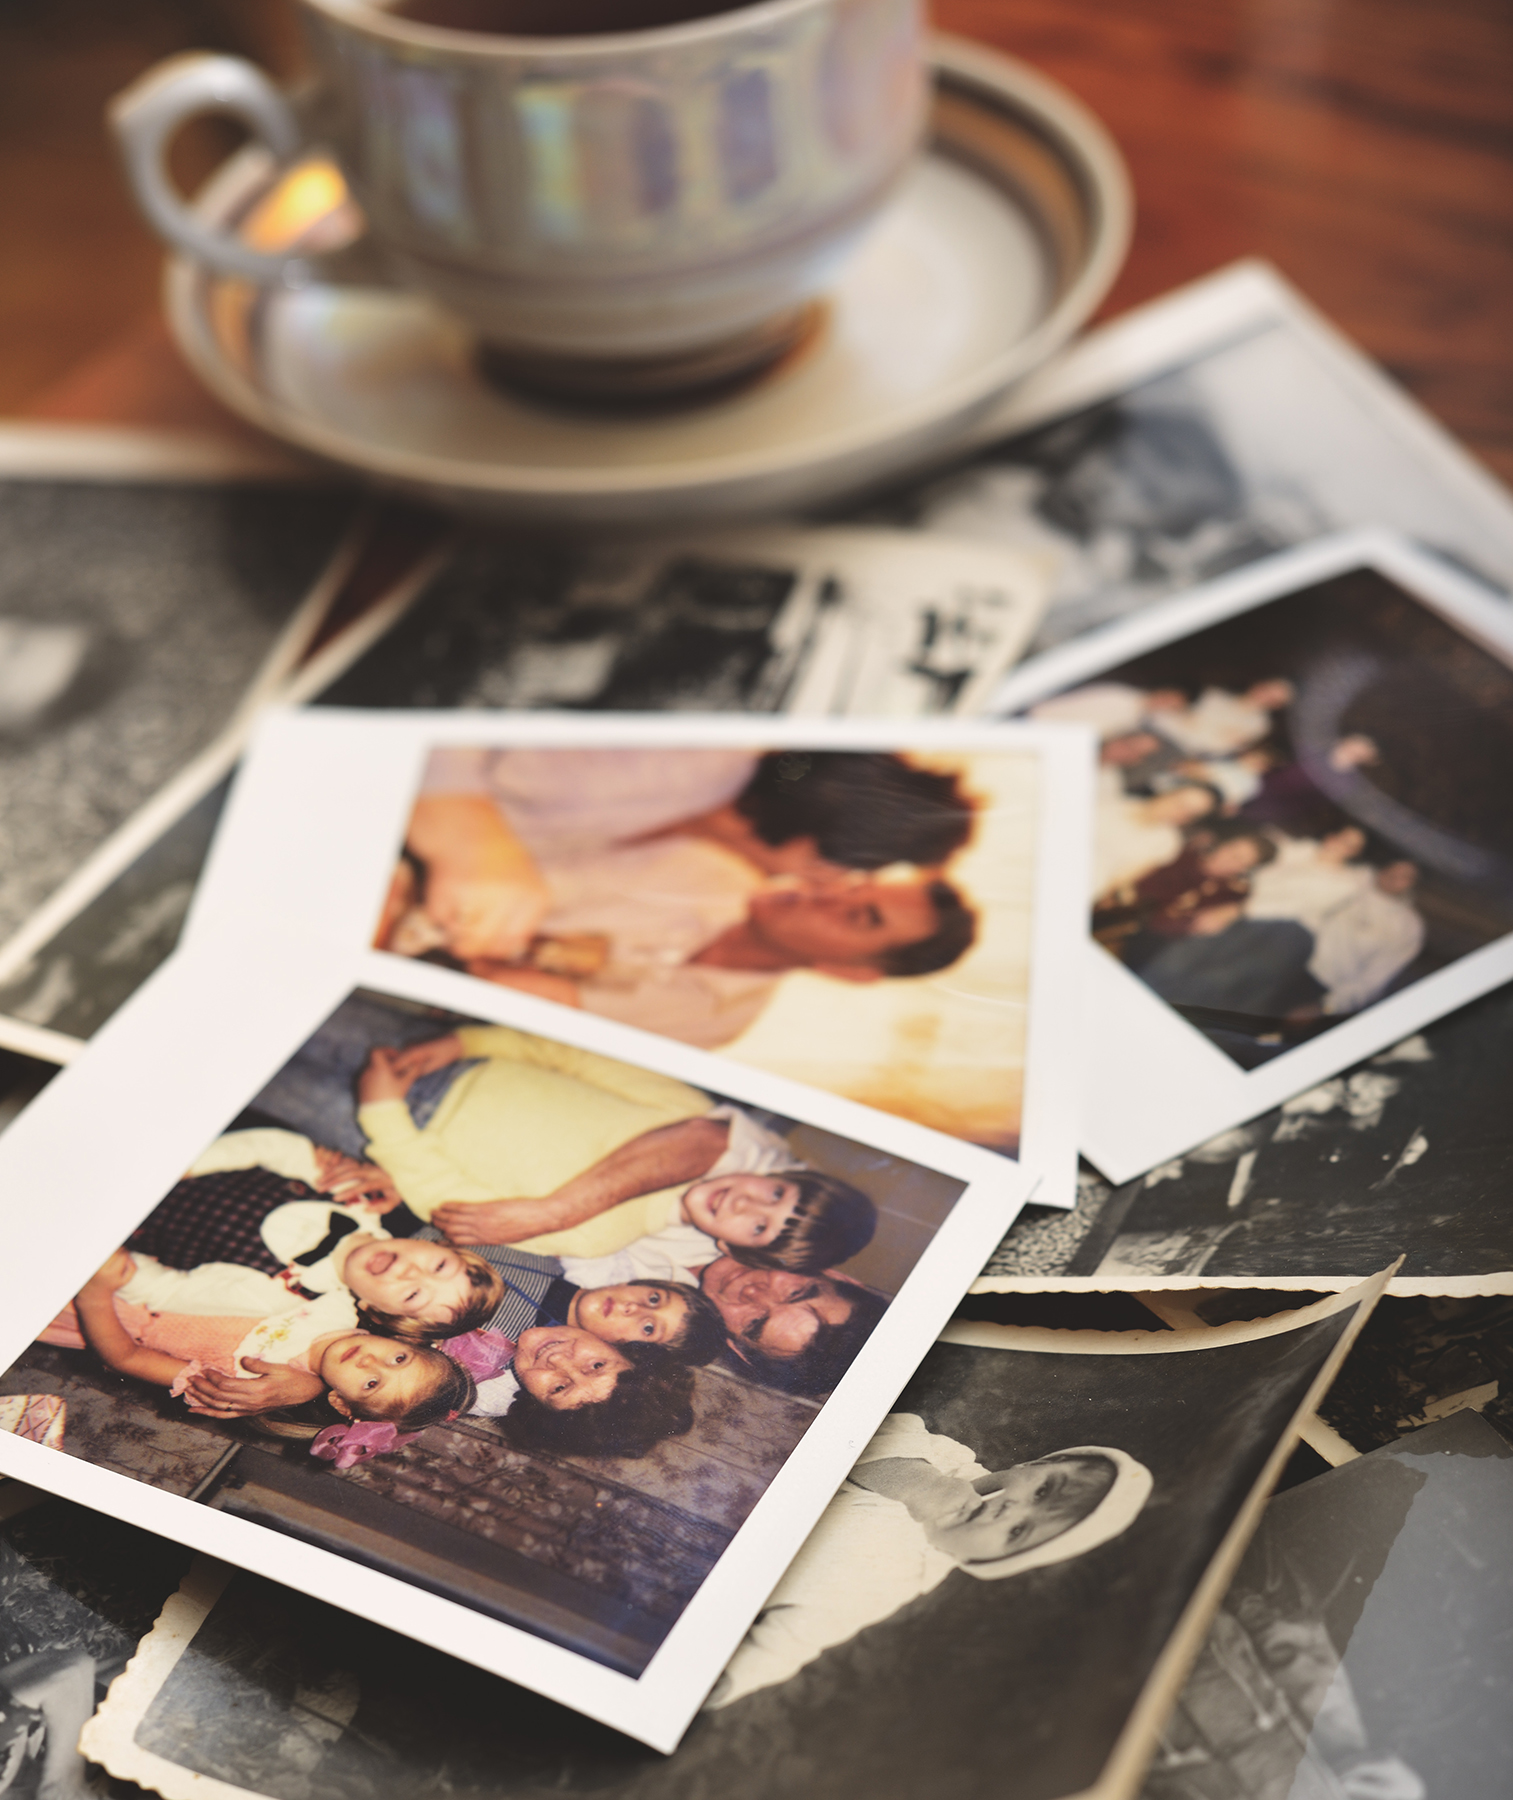 Tea and old photos